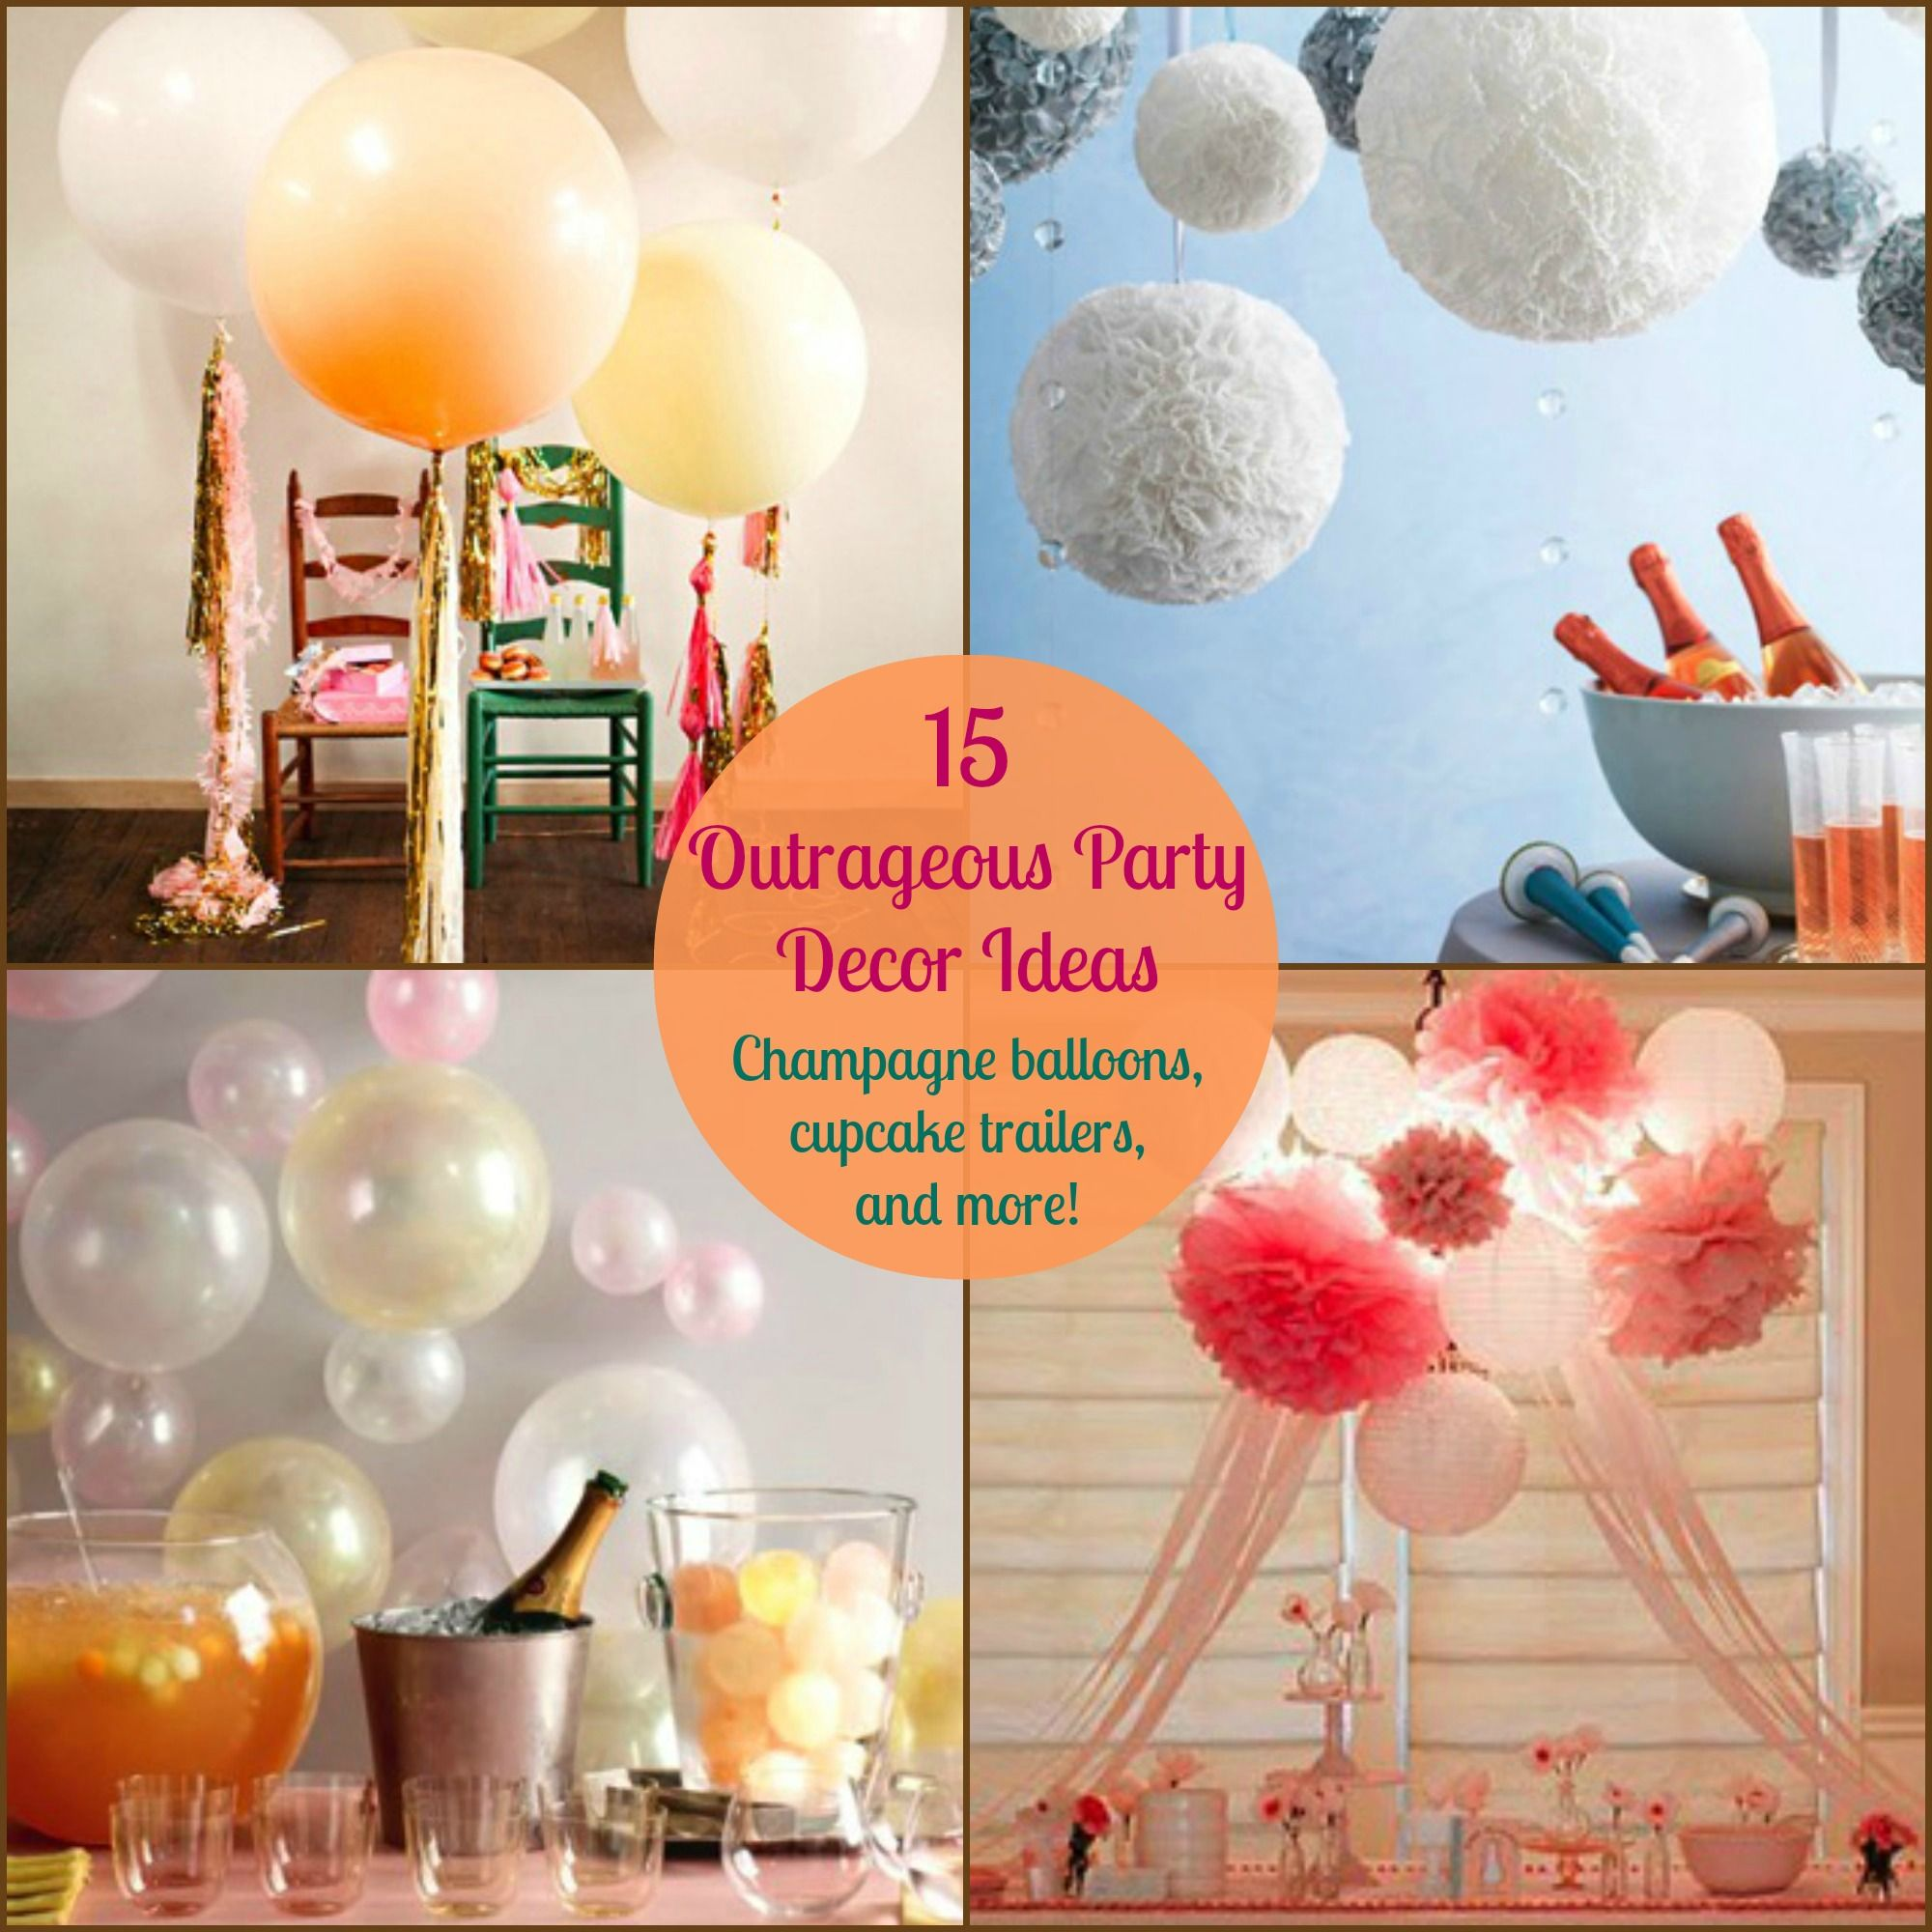 15 Outrageous Party Decor Ideas Diy Birthday Decorations